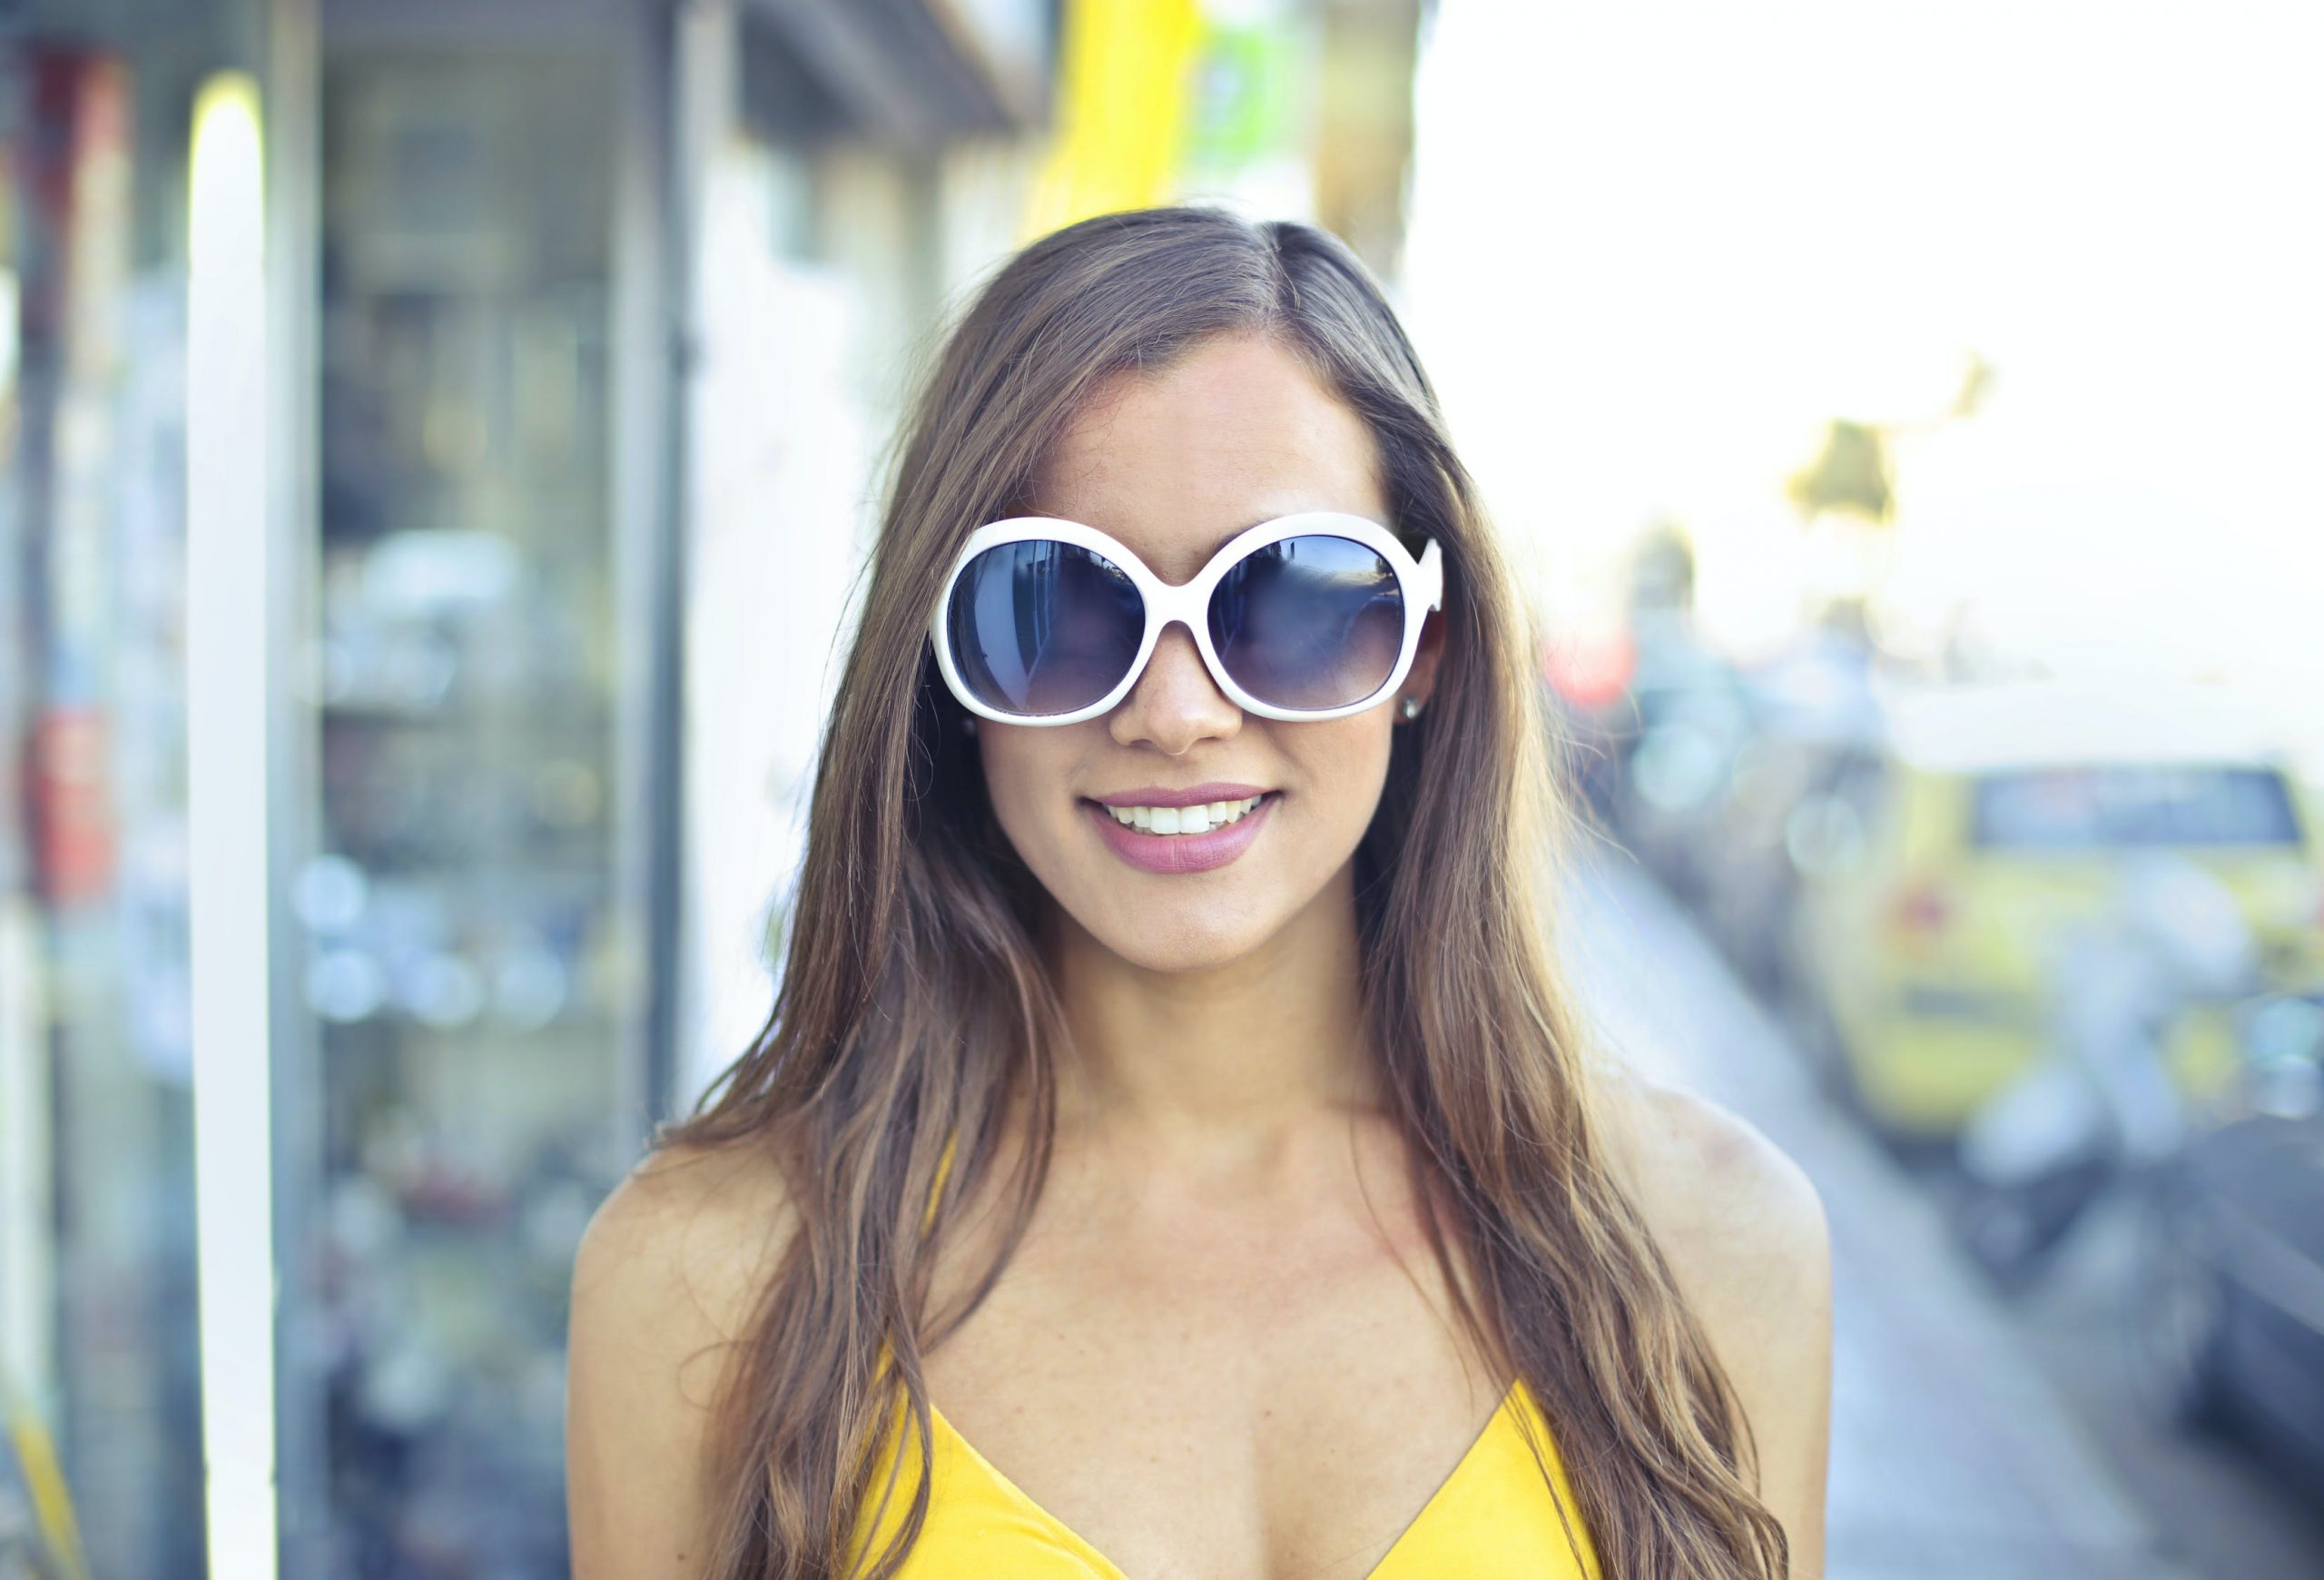 How to Pick the Perfect Sunglasses - Complete Guide